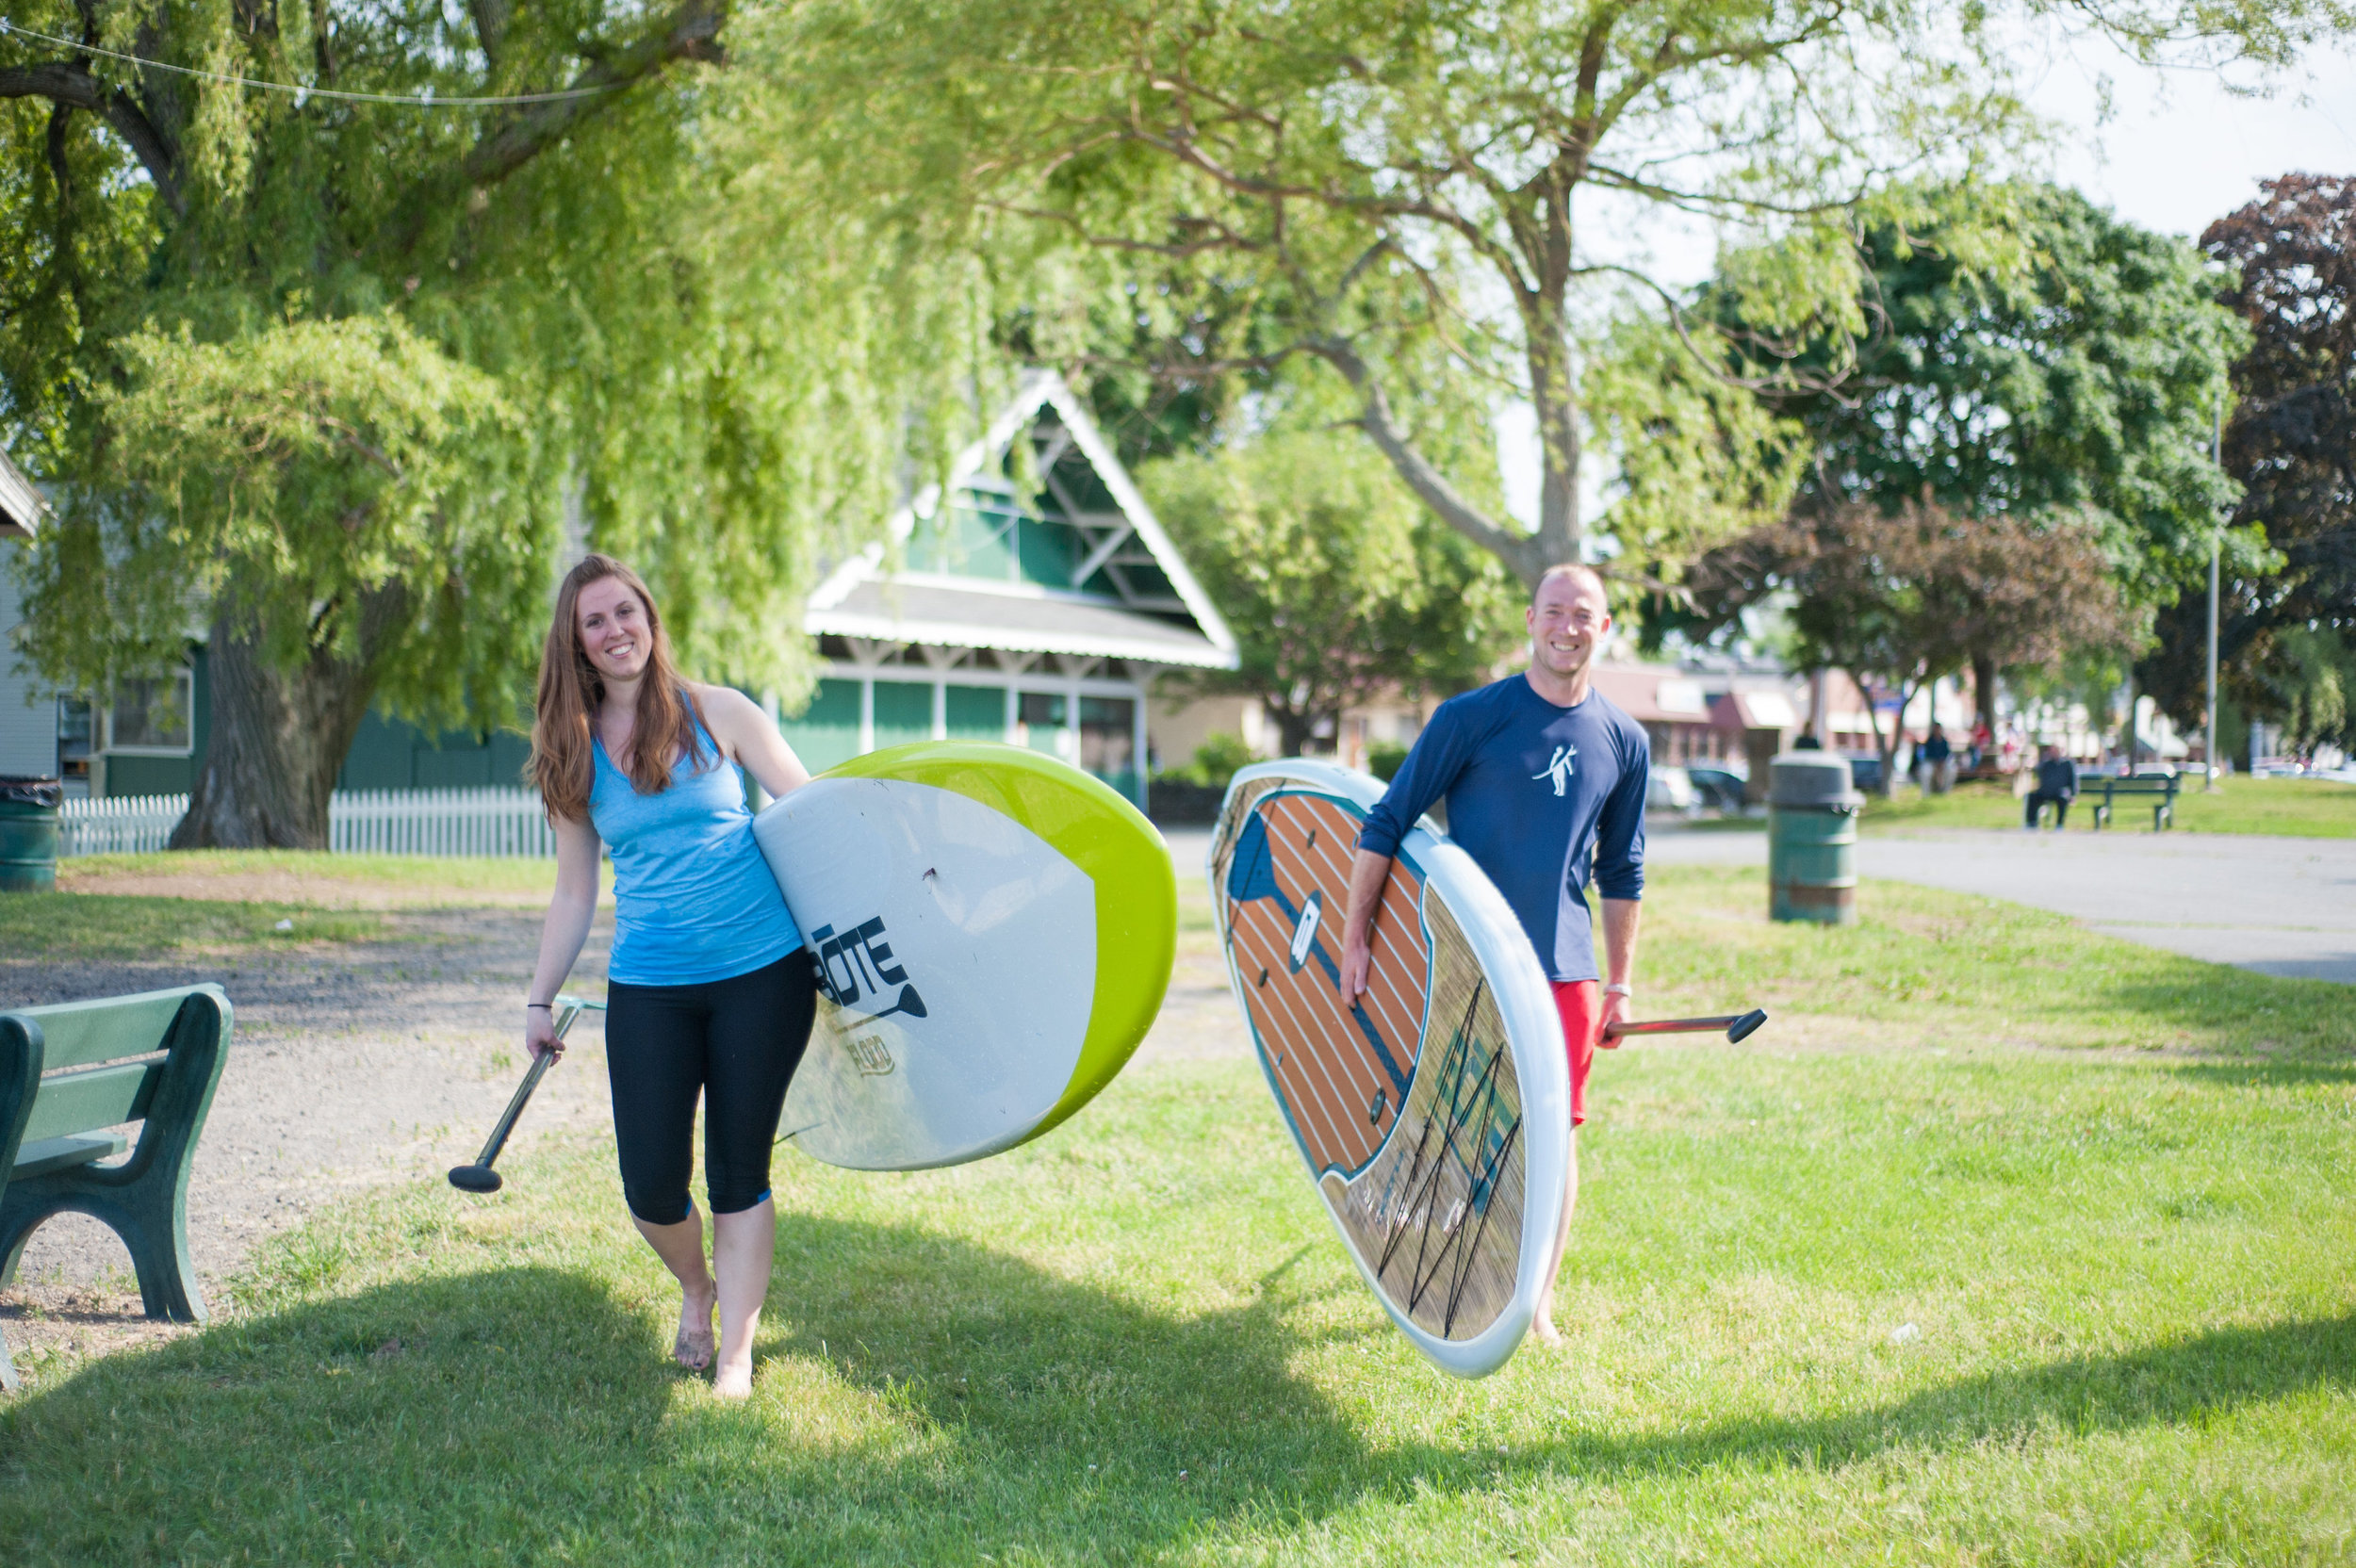 standup paddleboard rentals and kayak rentals in Massachusetts